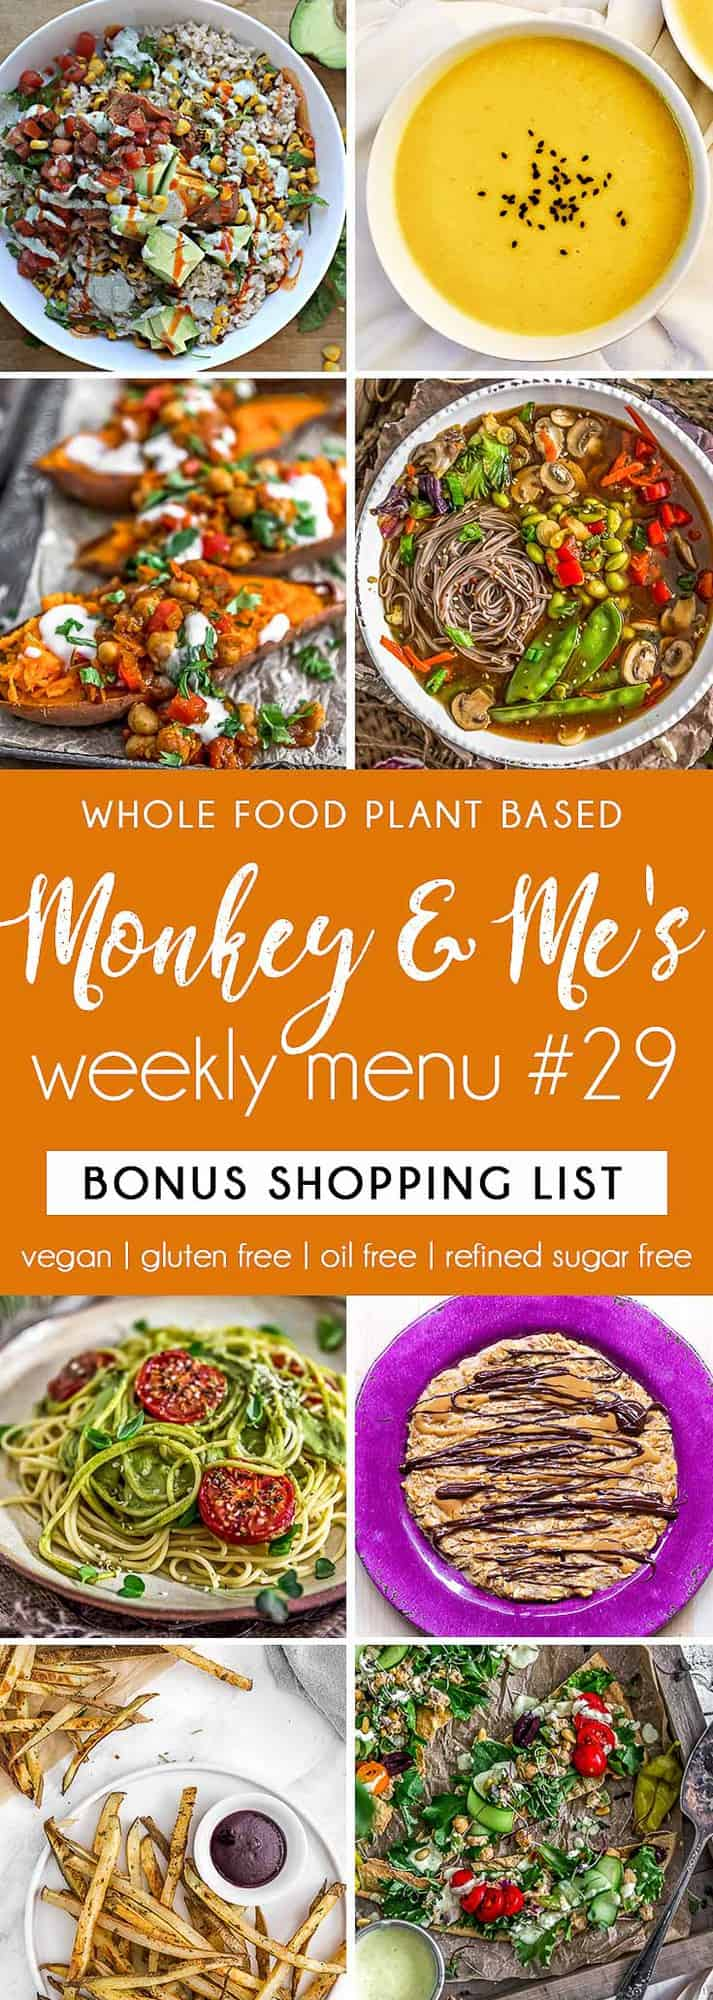 Monkey and Me's Menu 29 featuring 8 recipes